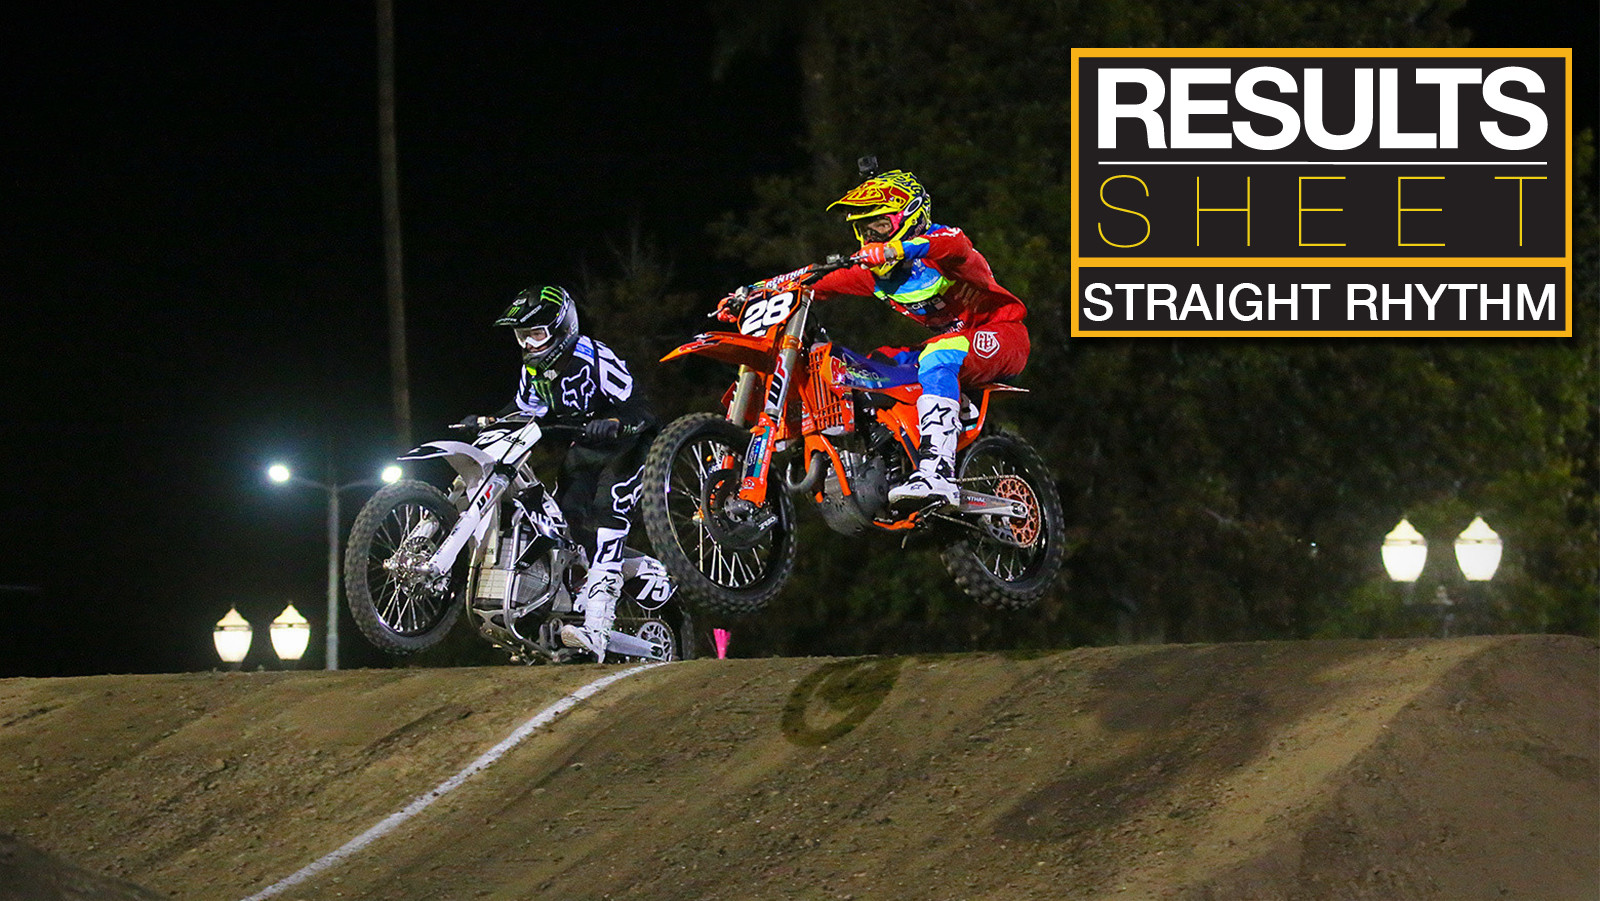 Results Sheet: 2017 Red Bull Straight Rhythm